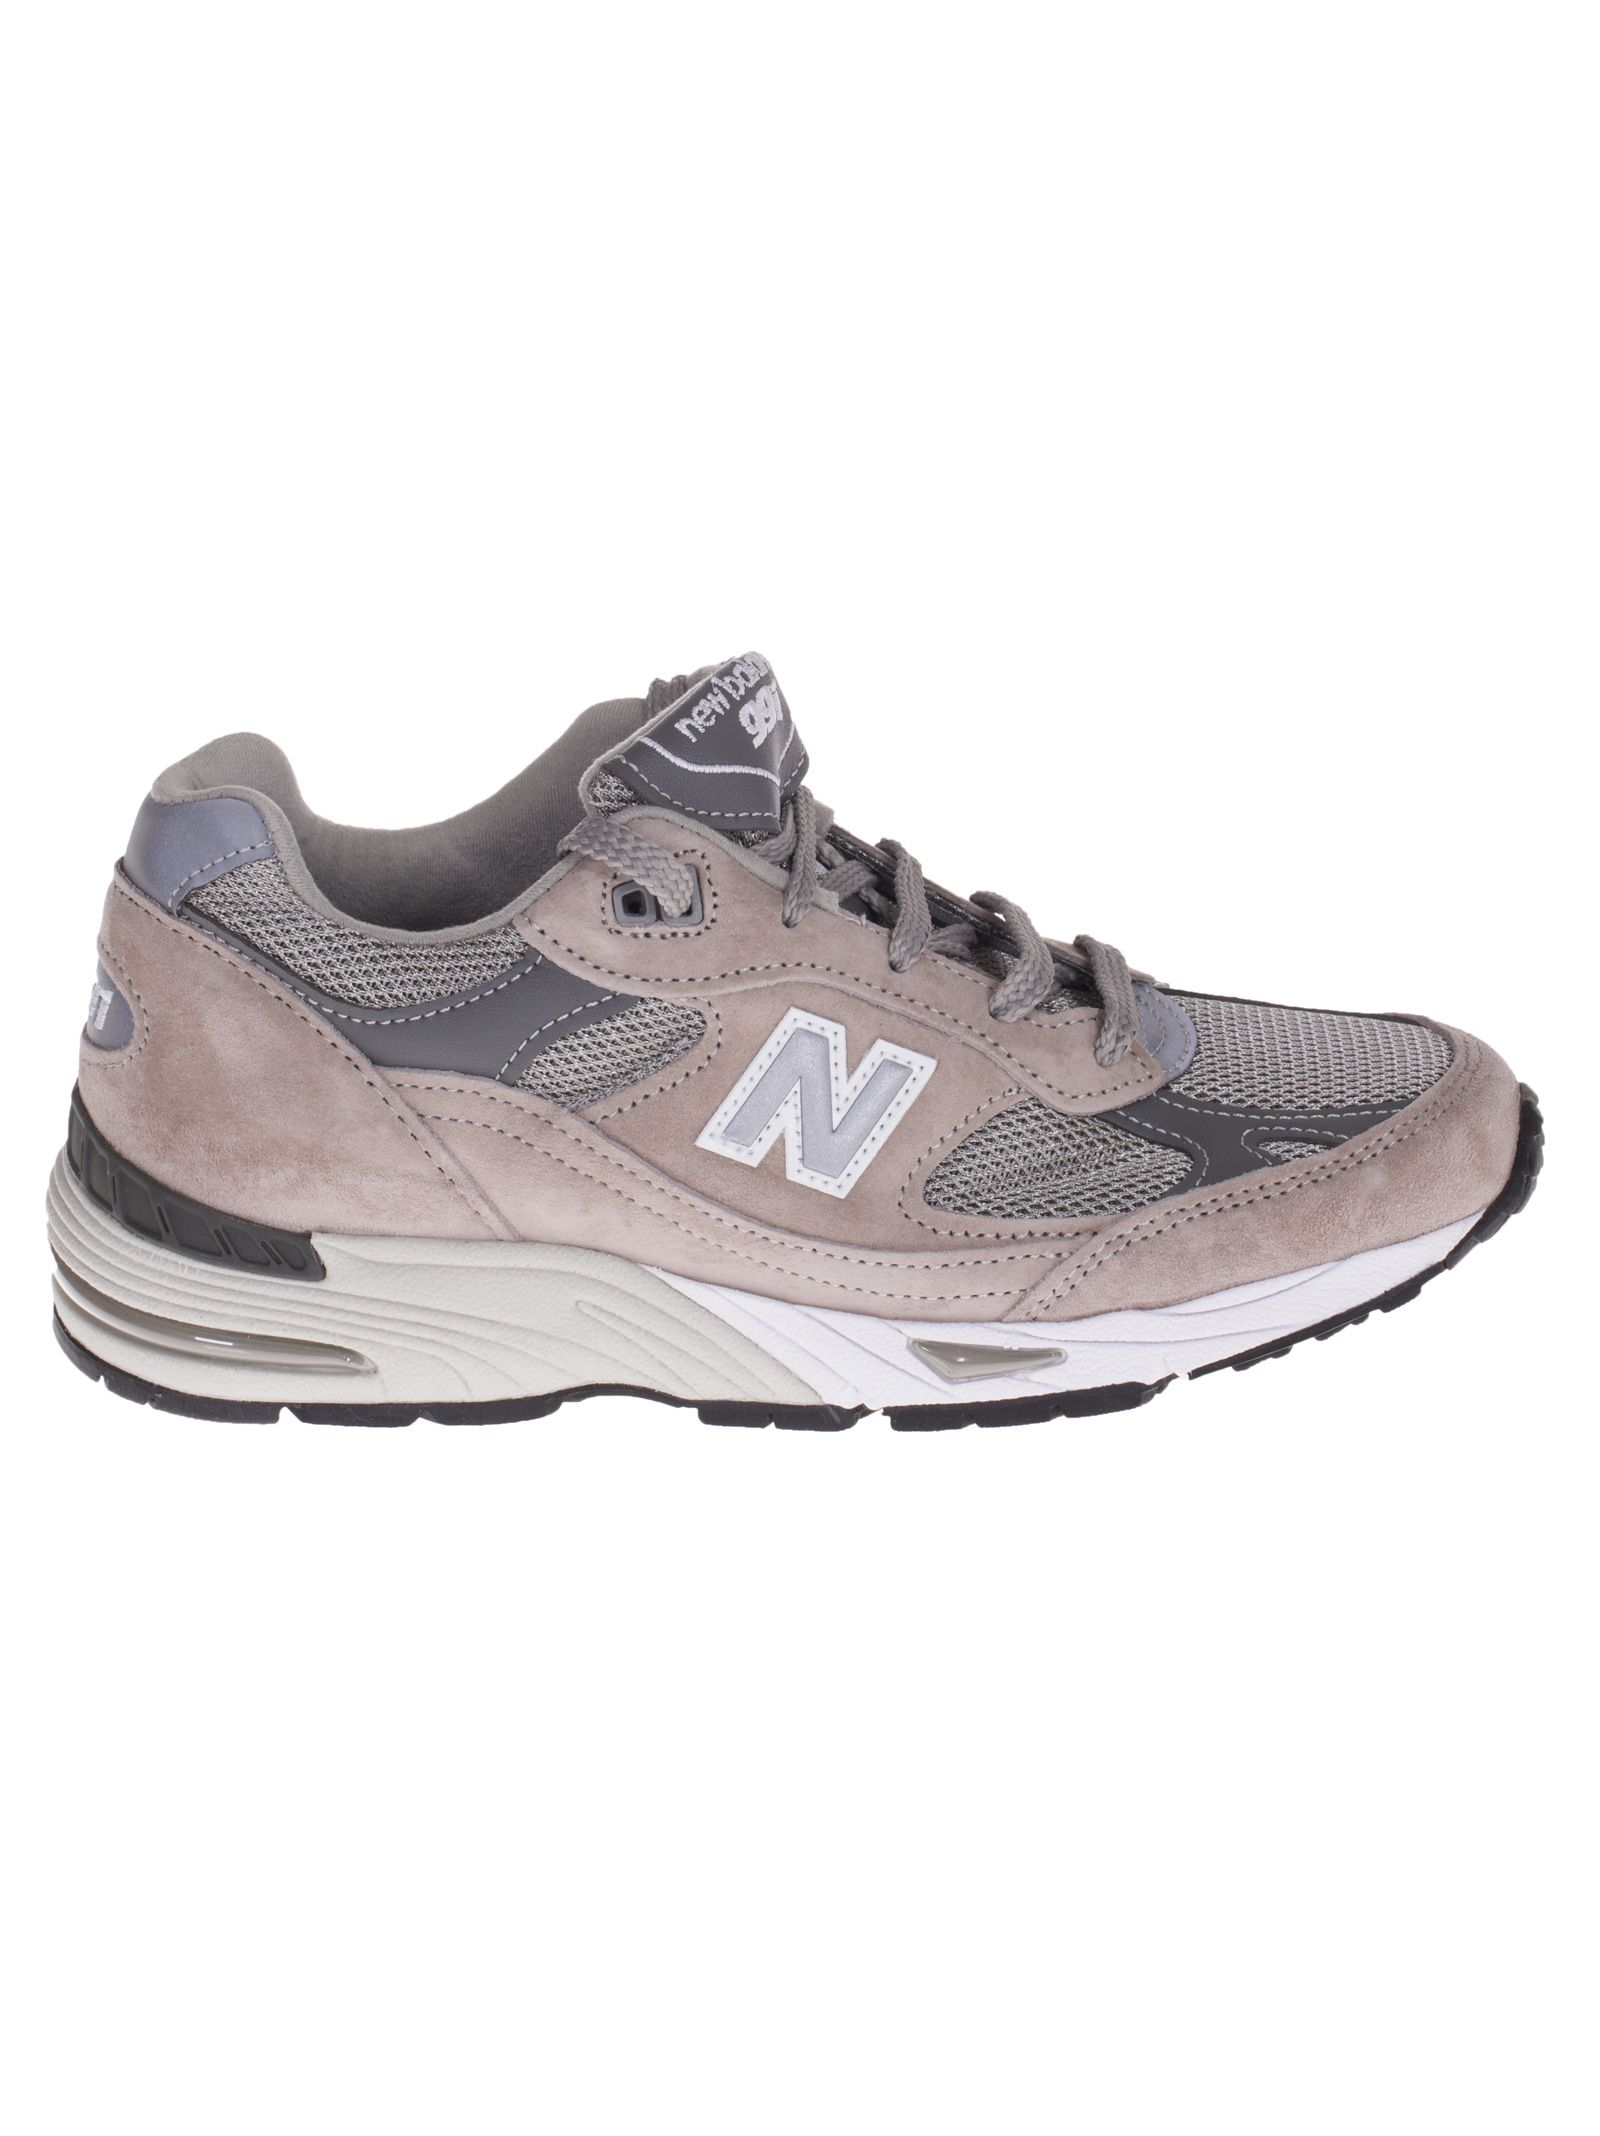 Grey New Balance 991 Sneakers - New Balance - Jake